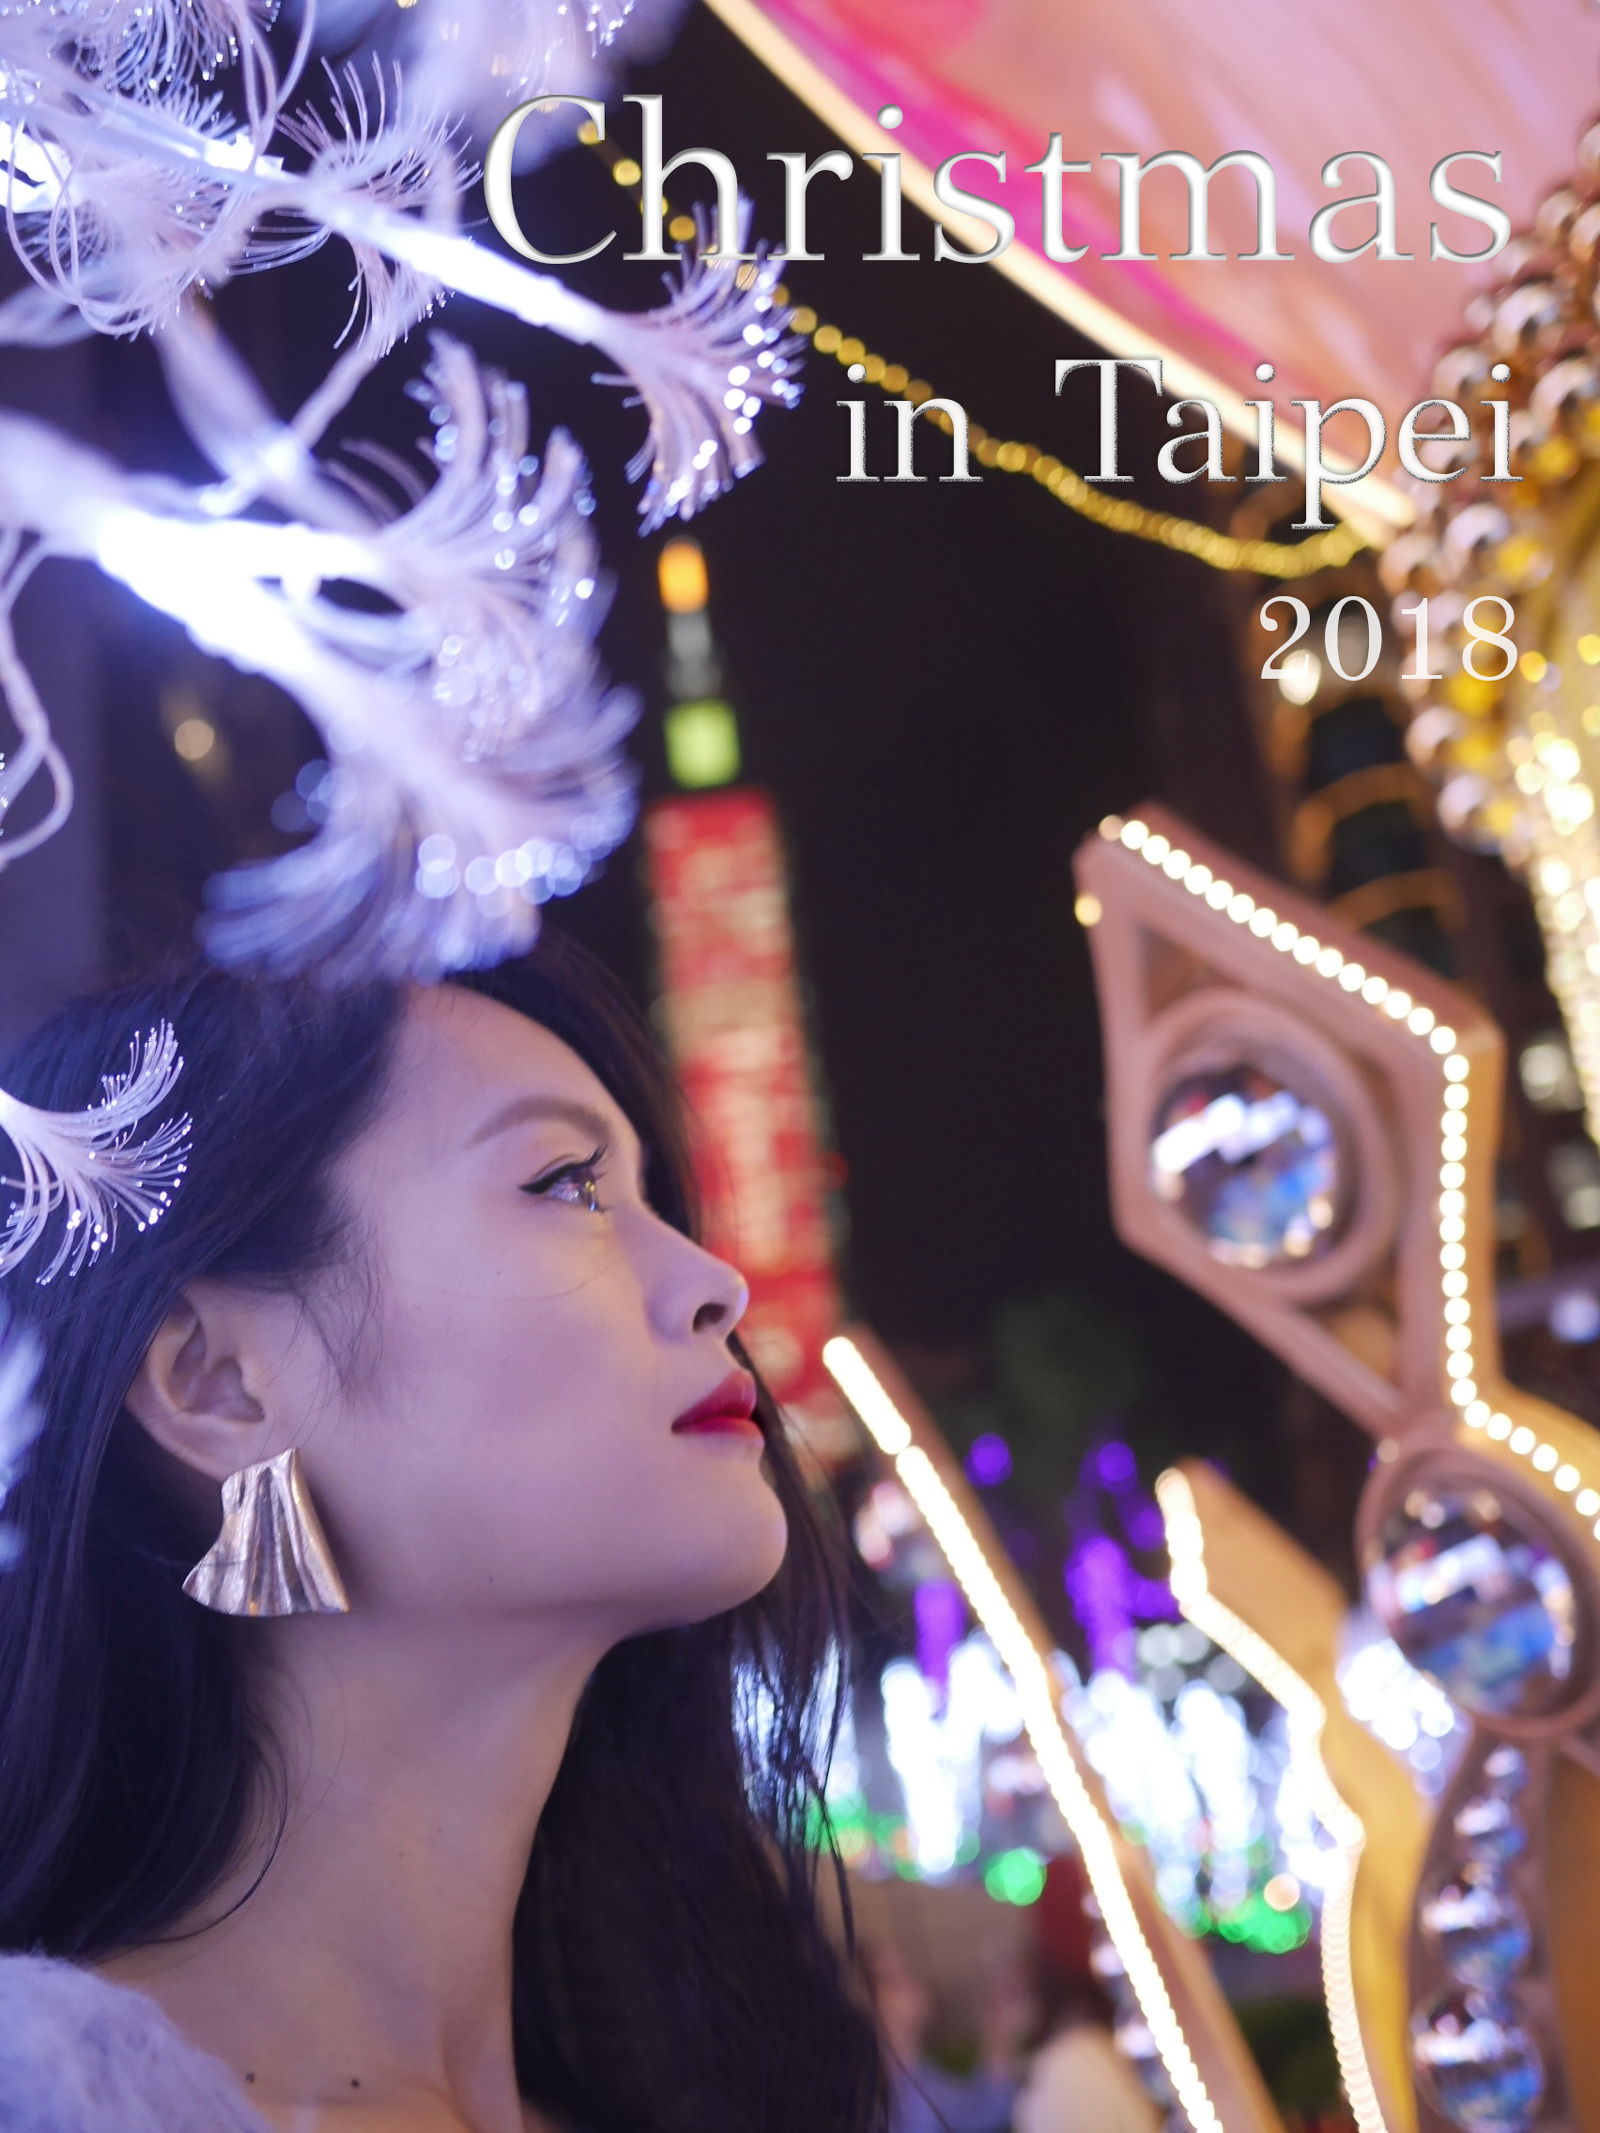 Christmas-in-Taipei-2018